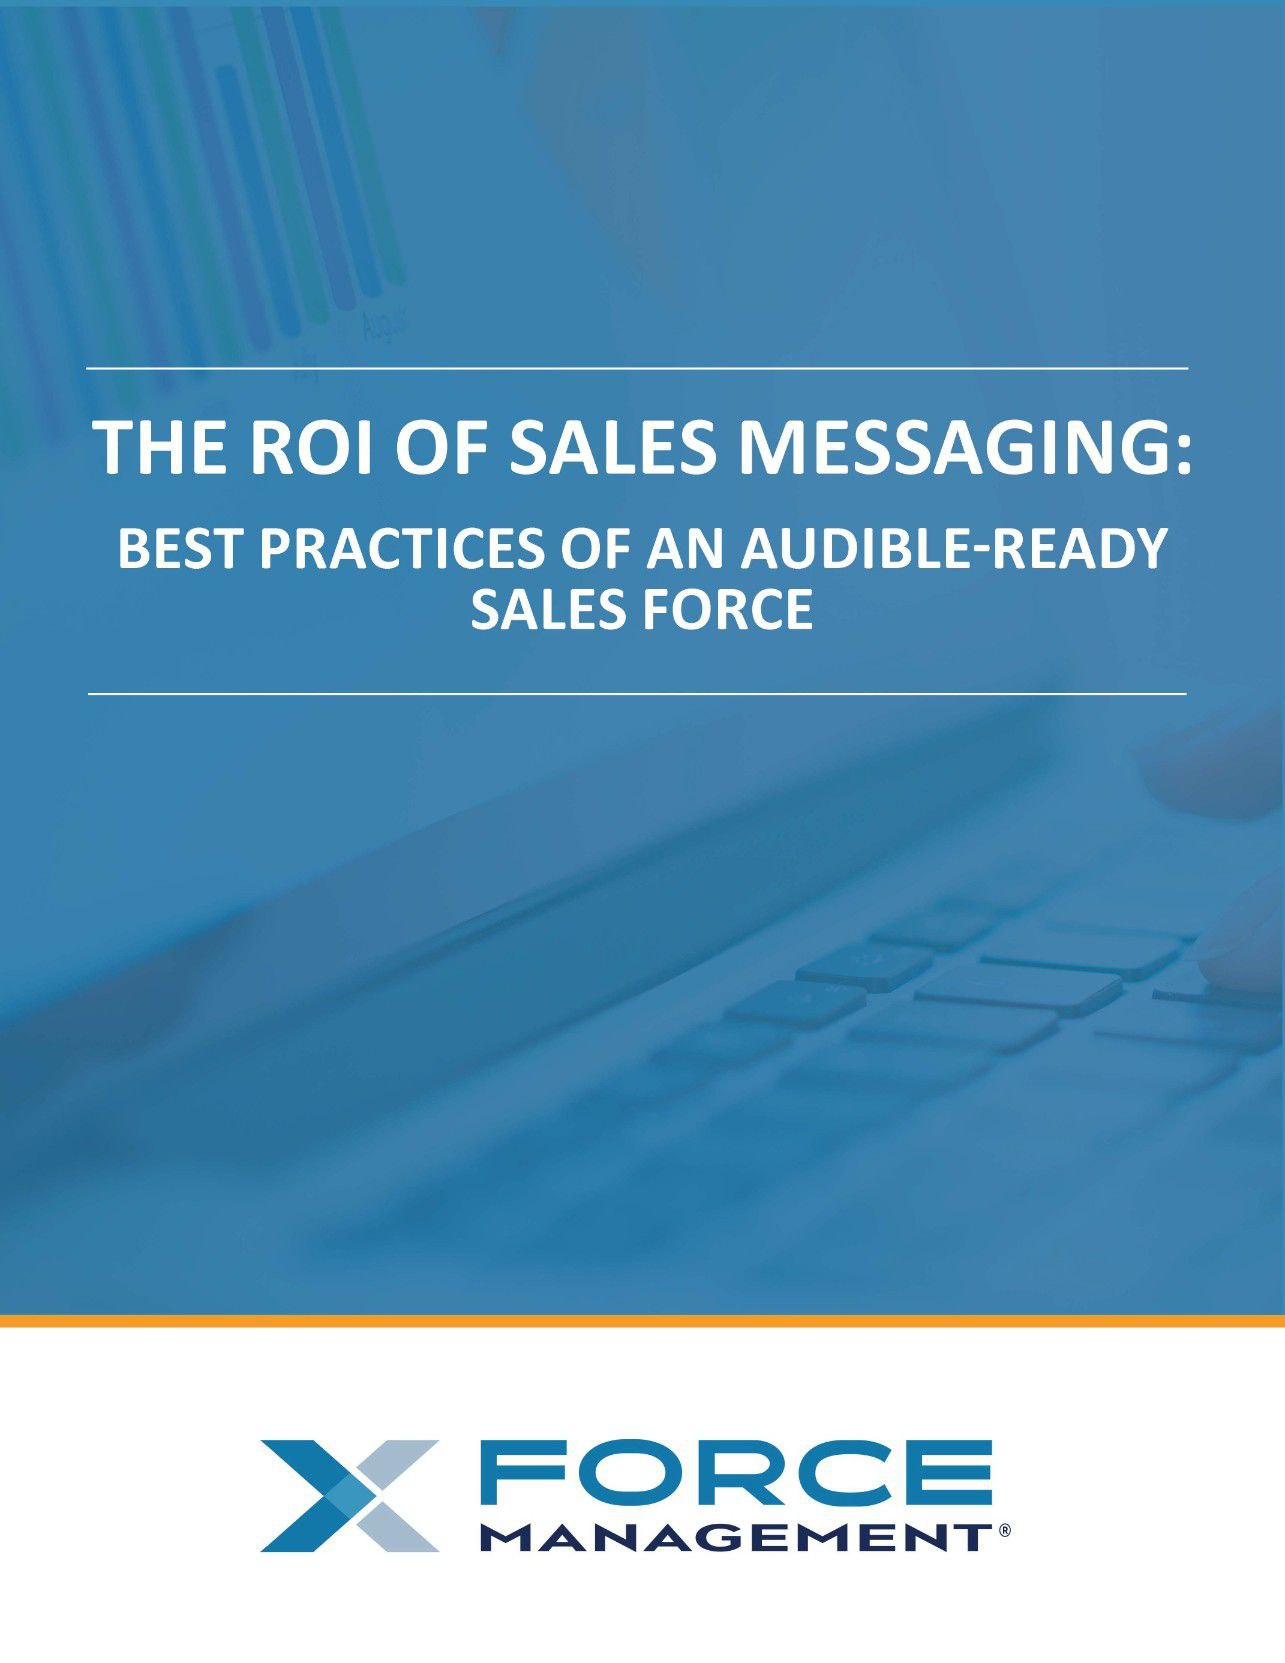 Download the ROI of Sales Messaging White PAper